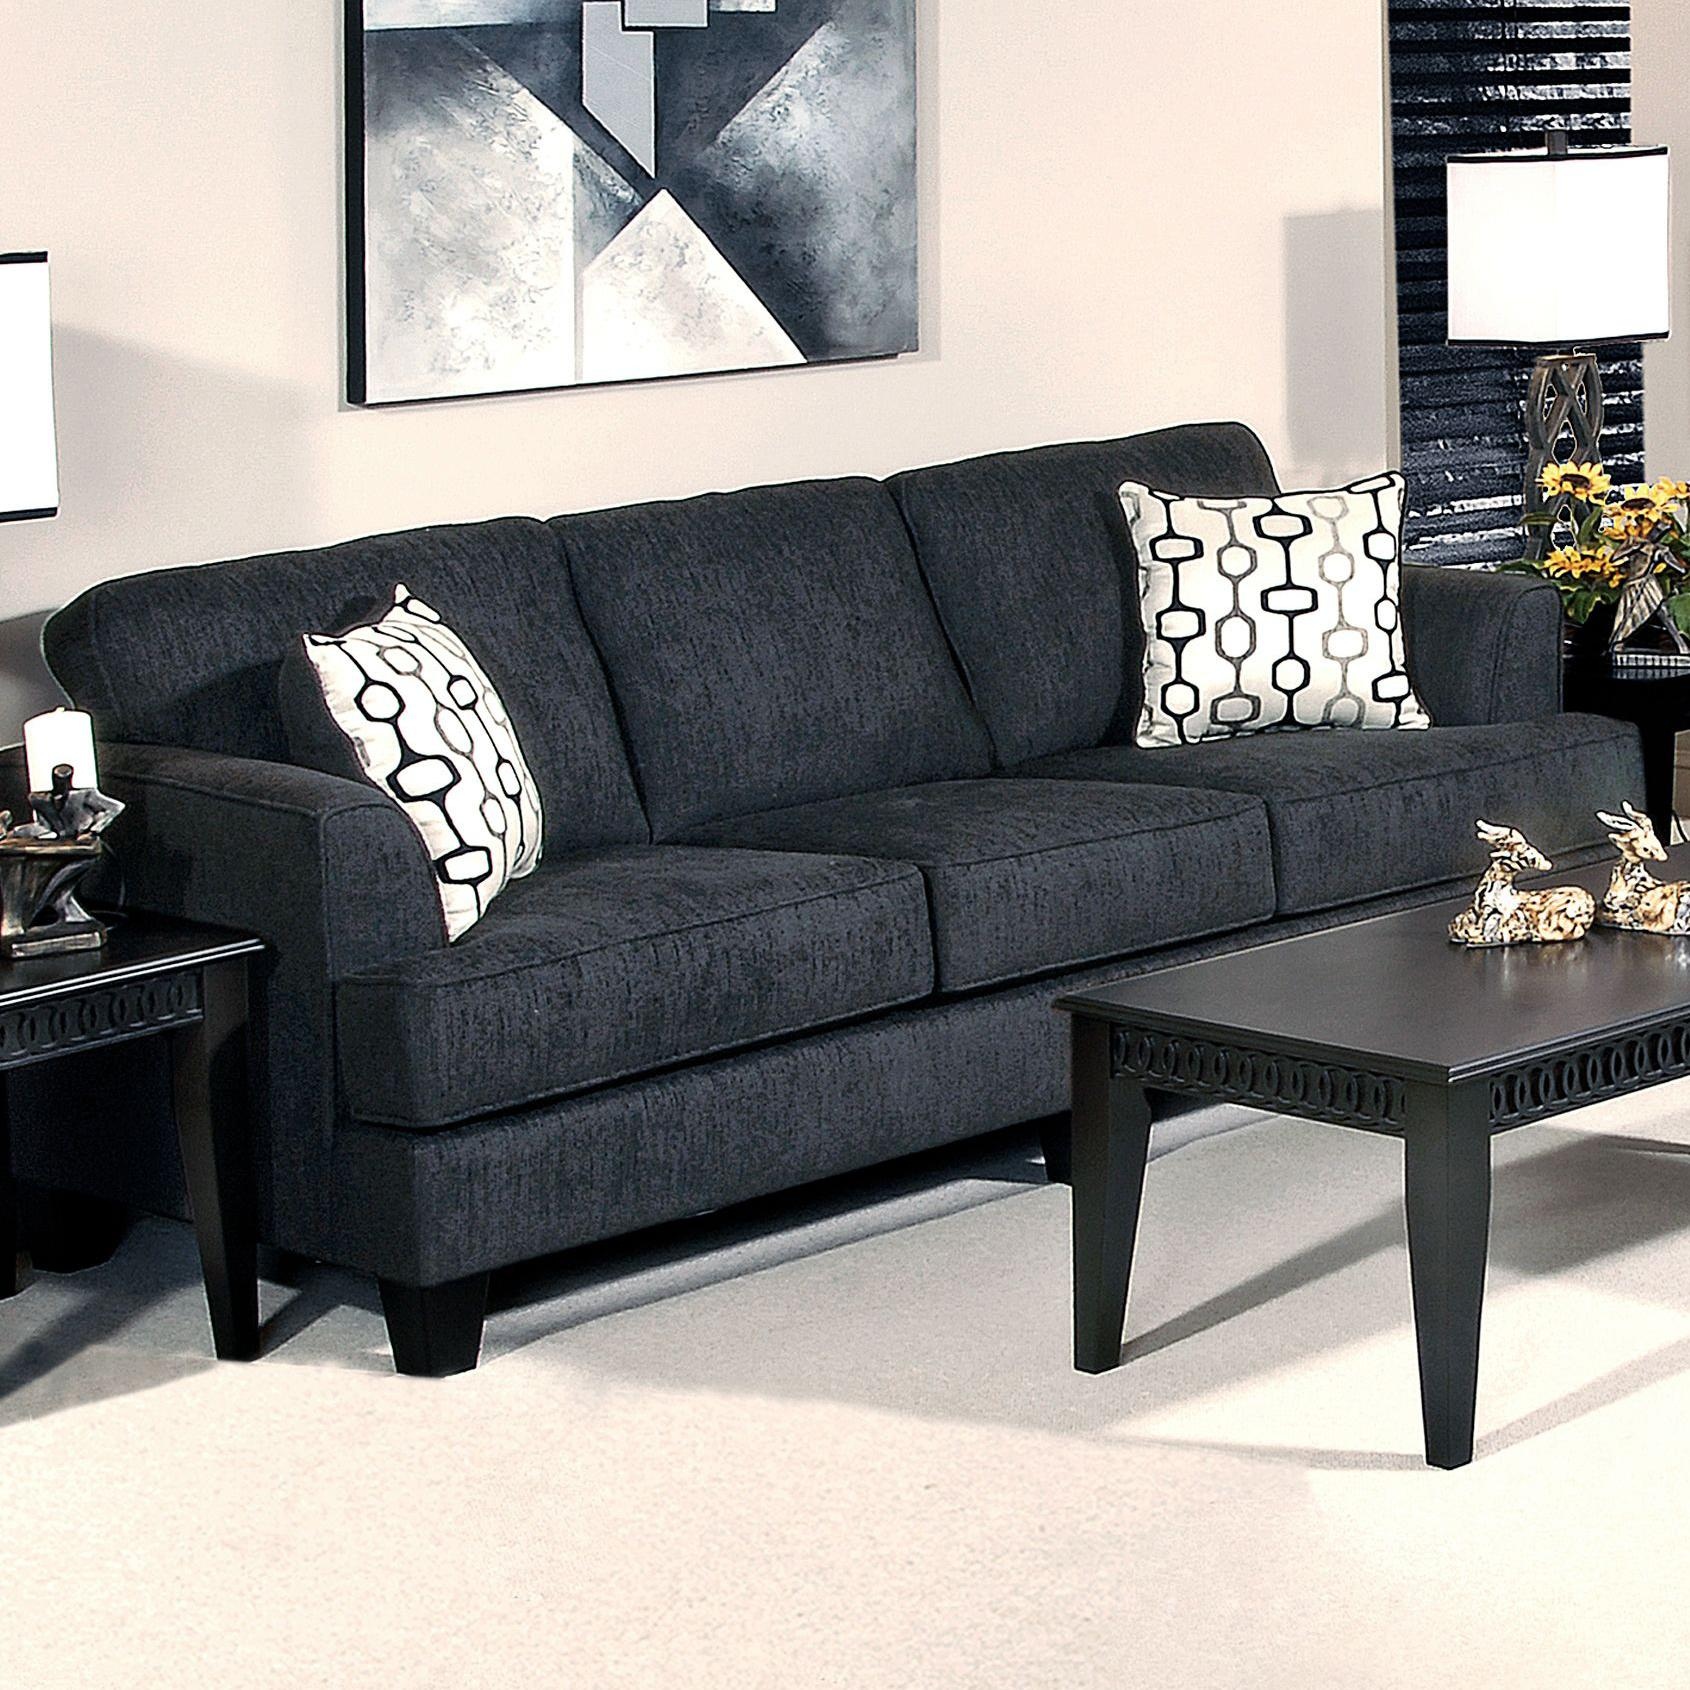 Serta Upholstery By Hughes Furniture 5600 Contemporary